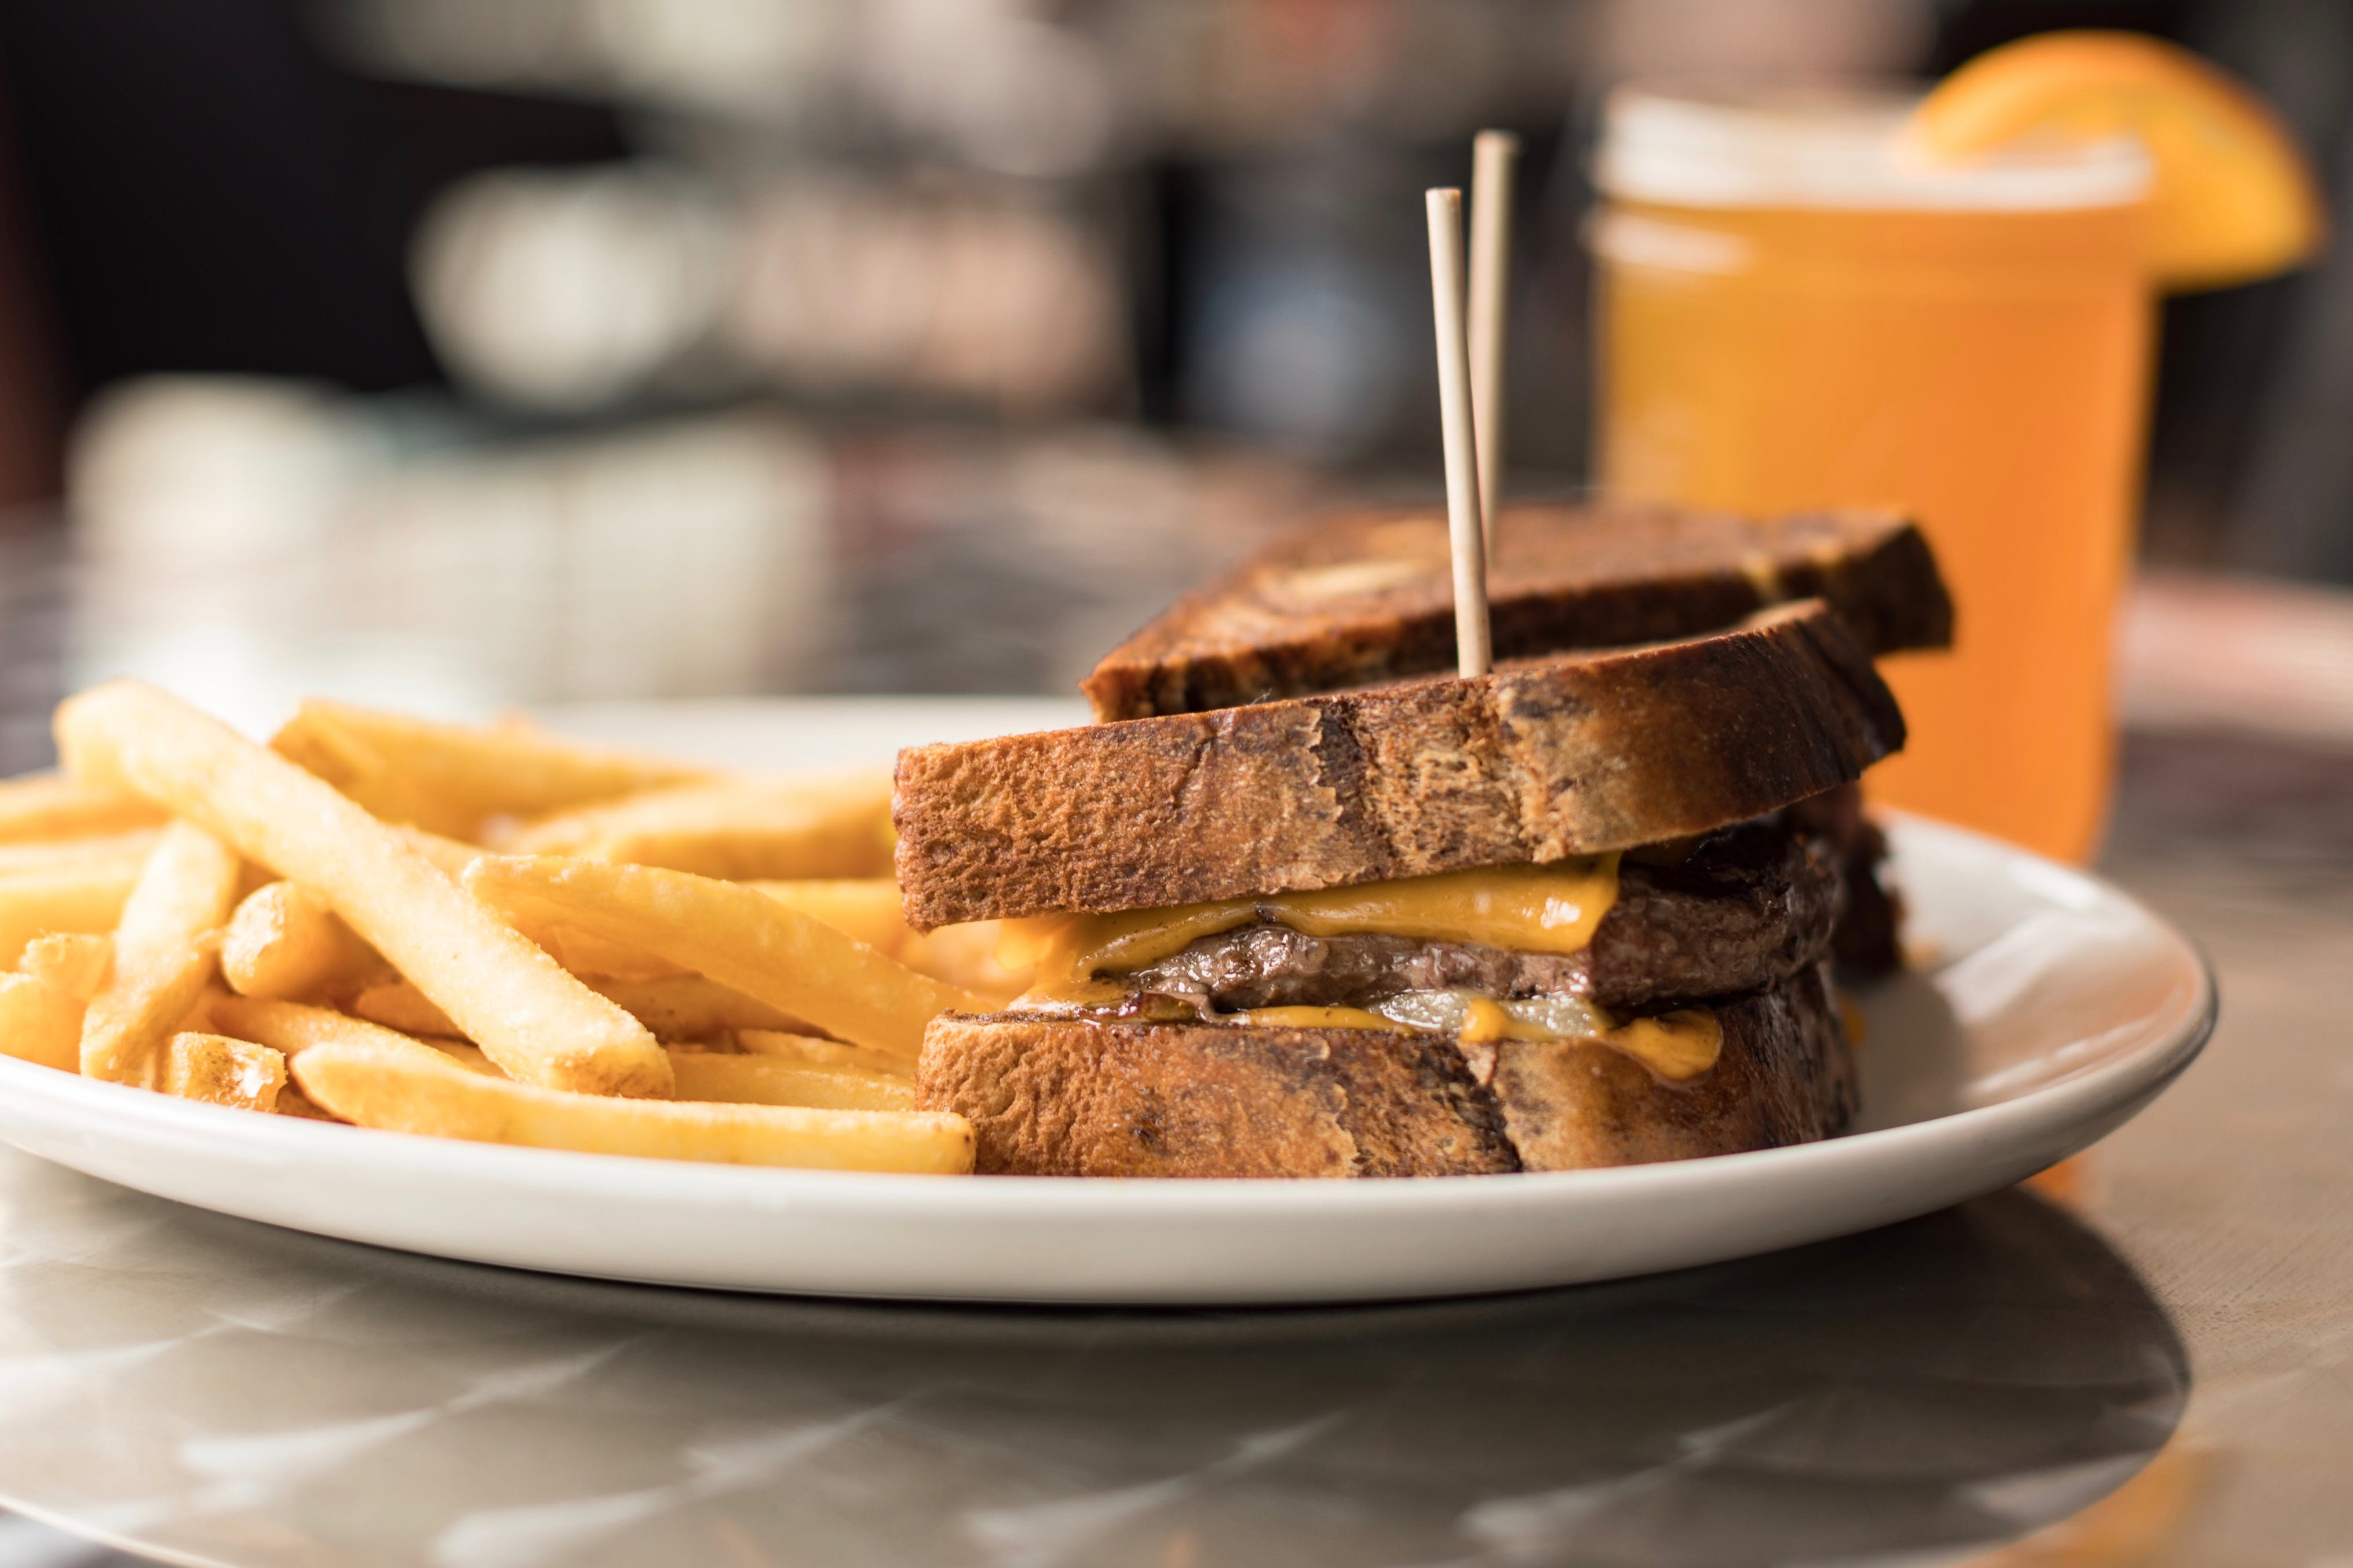 Patty Melt Burger from The District Pub and Grill in Eau Claire, WI